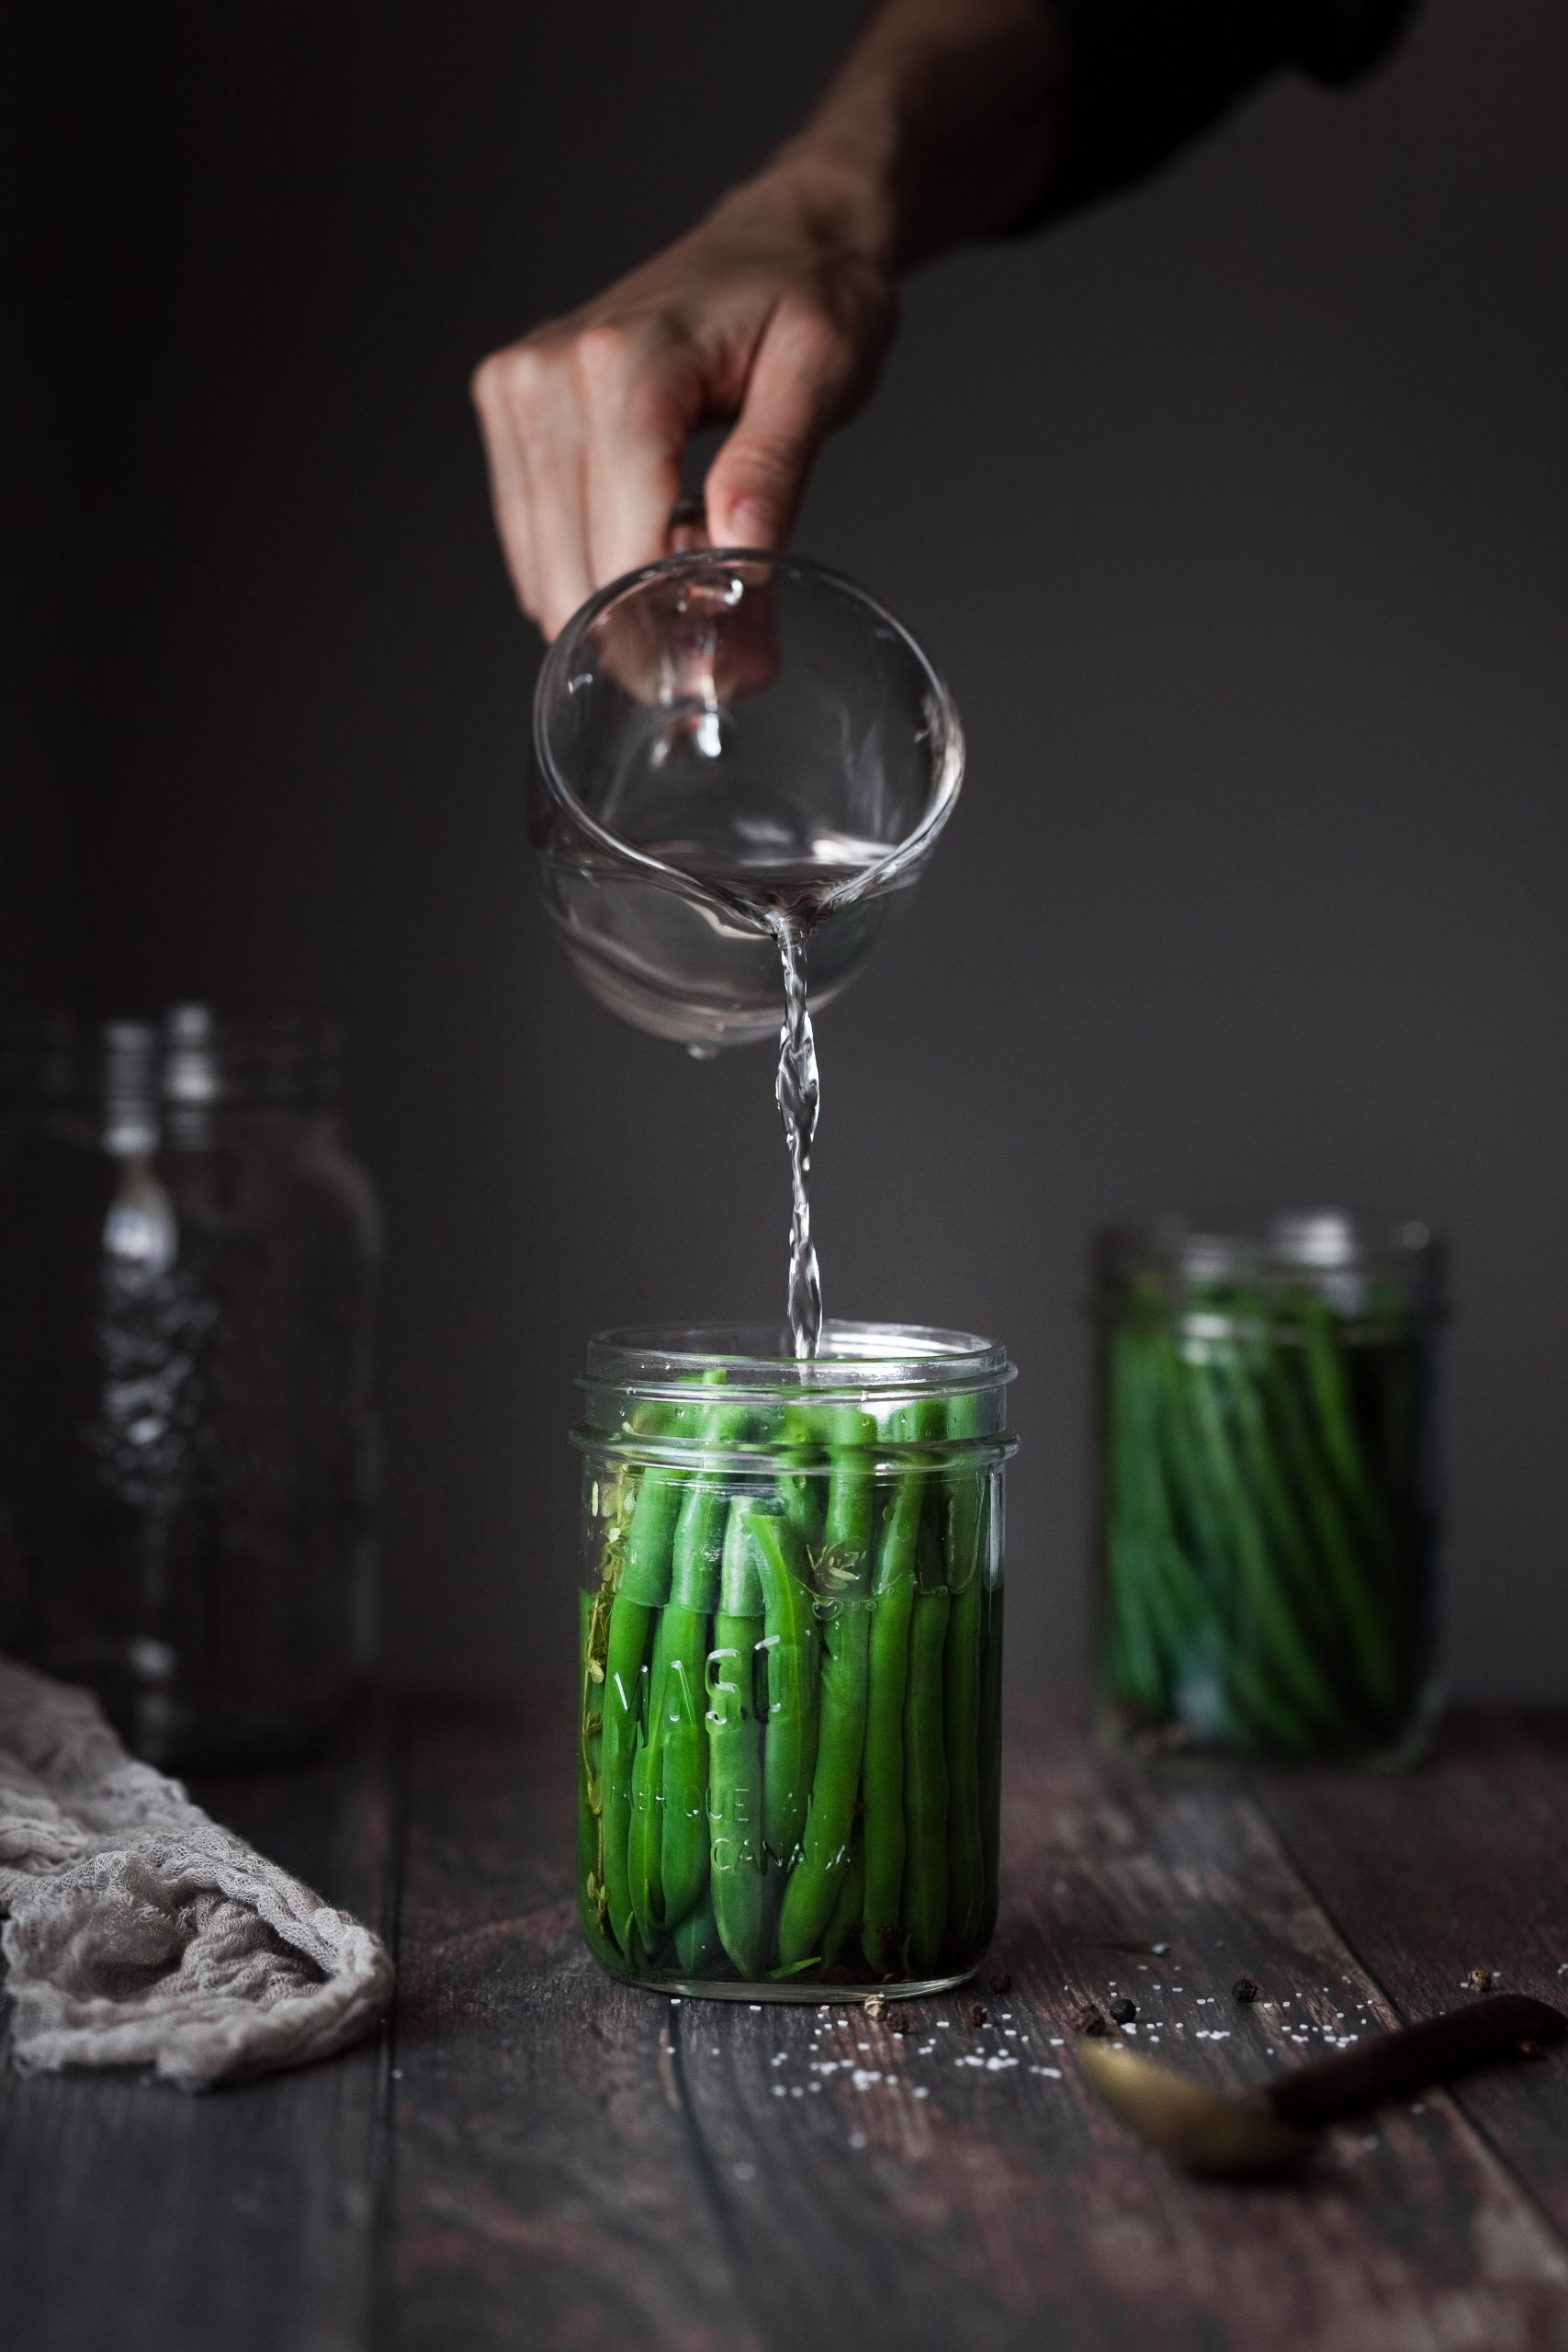 a person pouring brine into a jar filled with green beans.